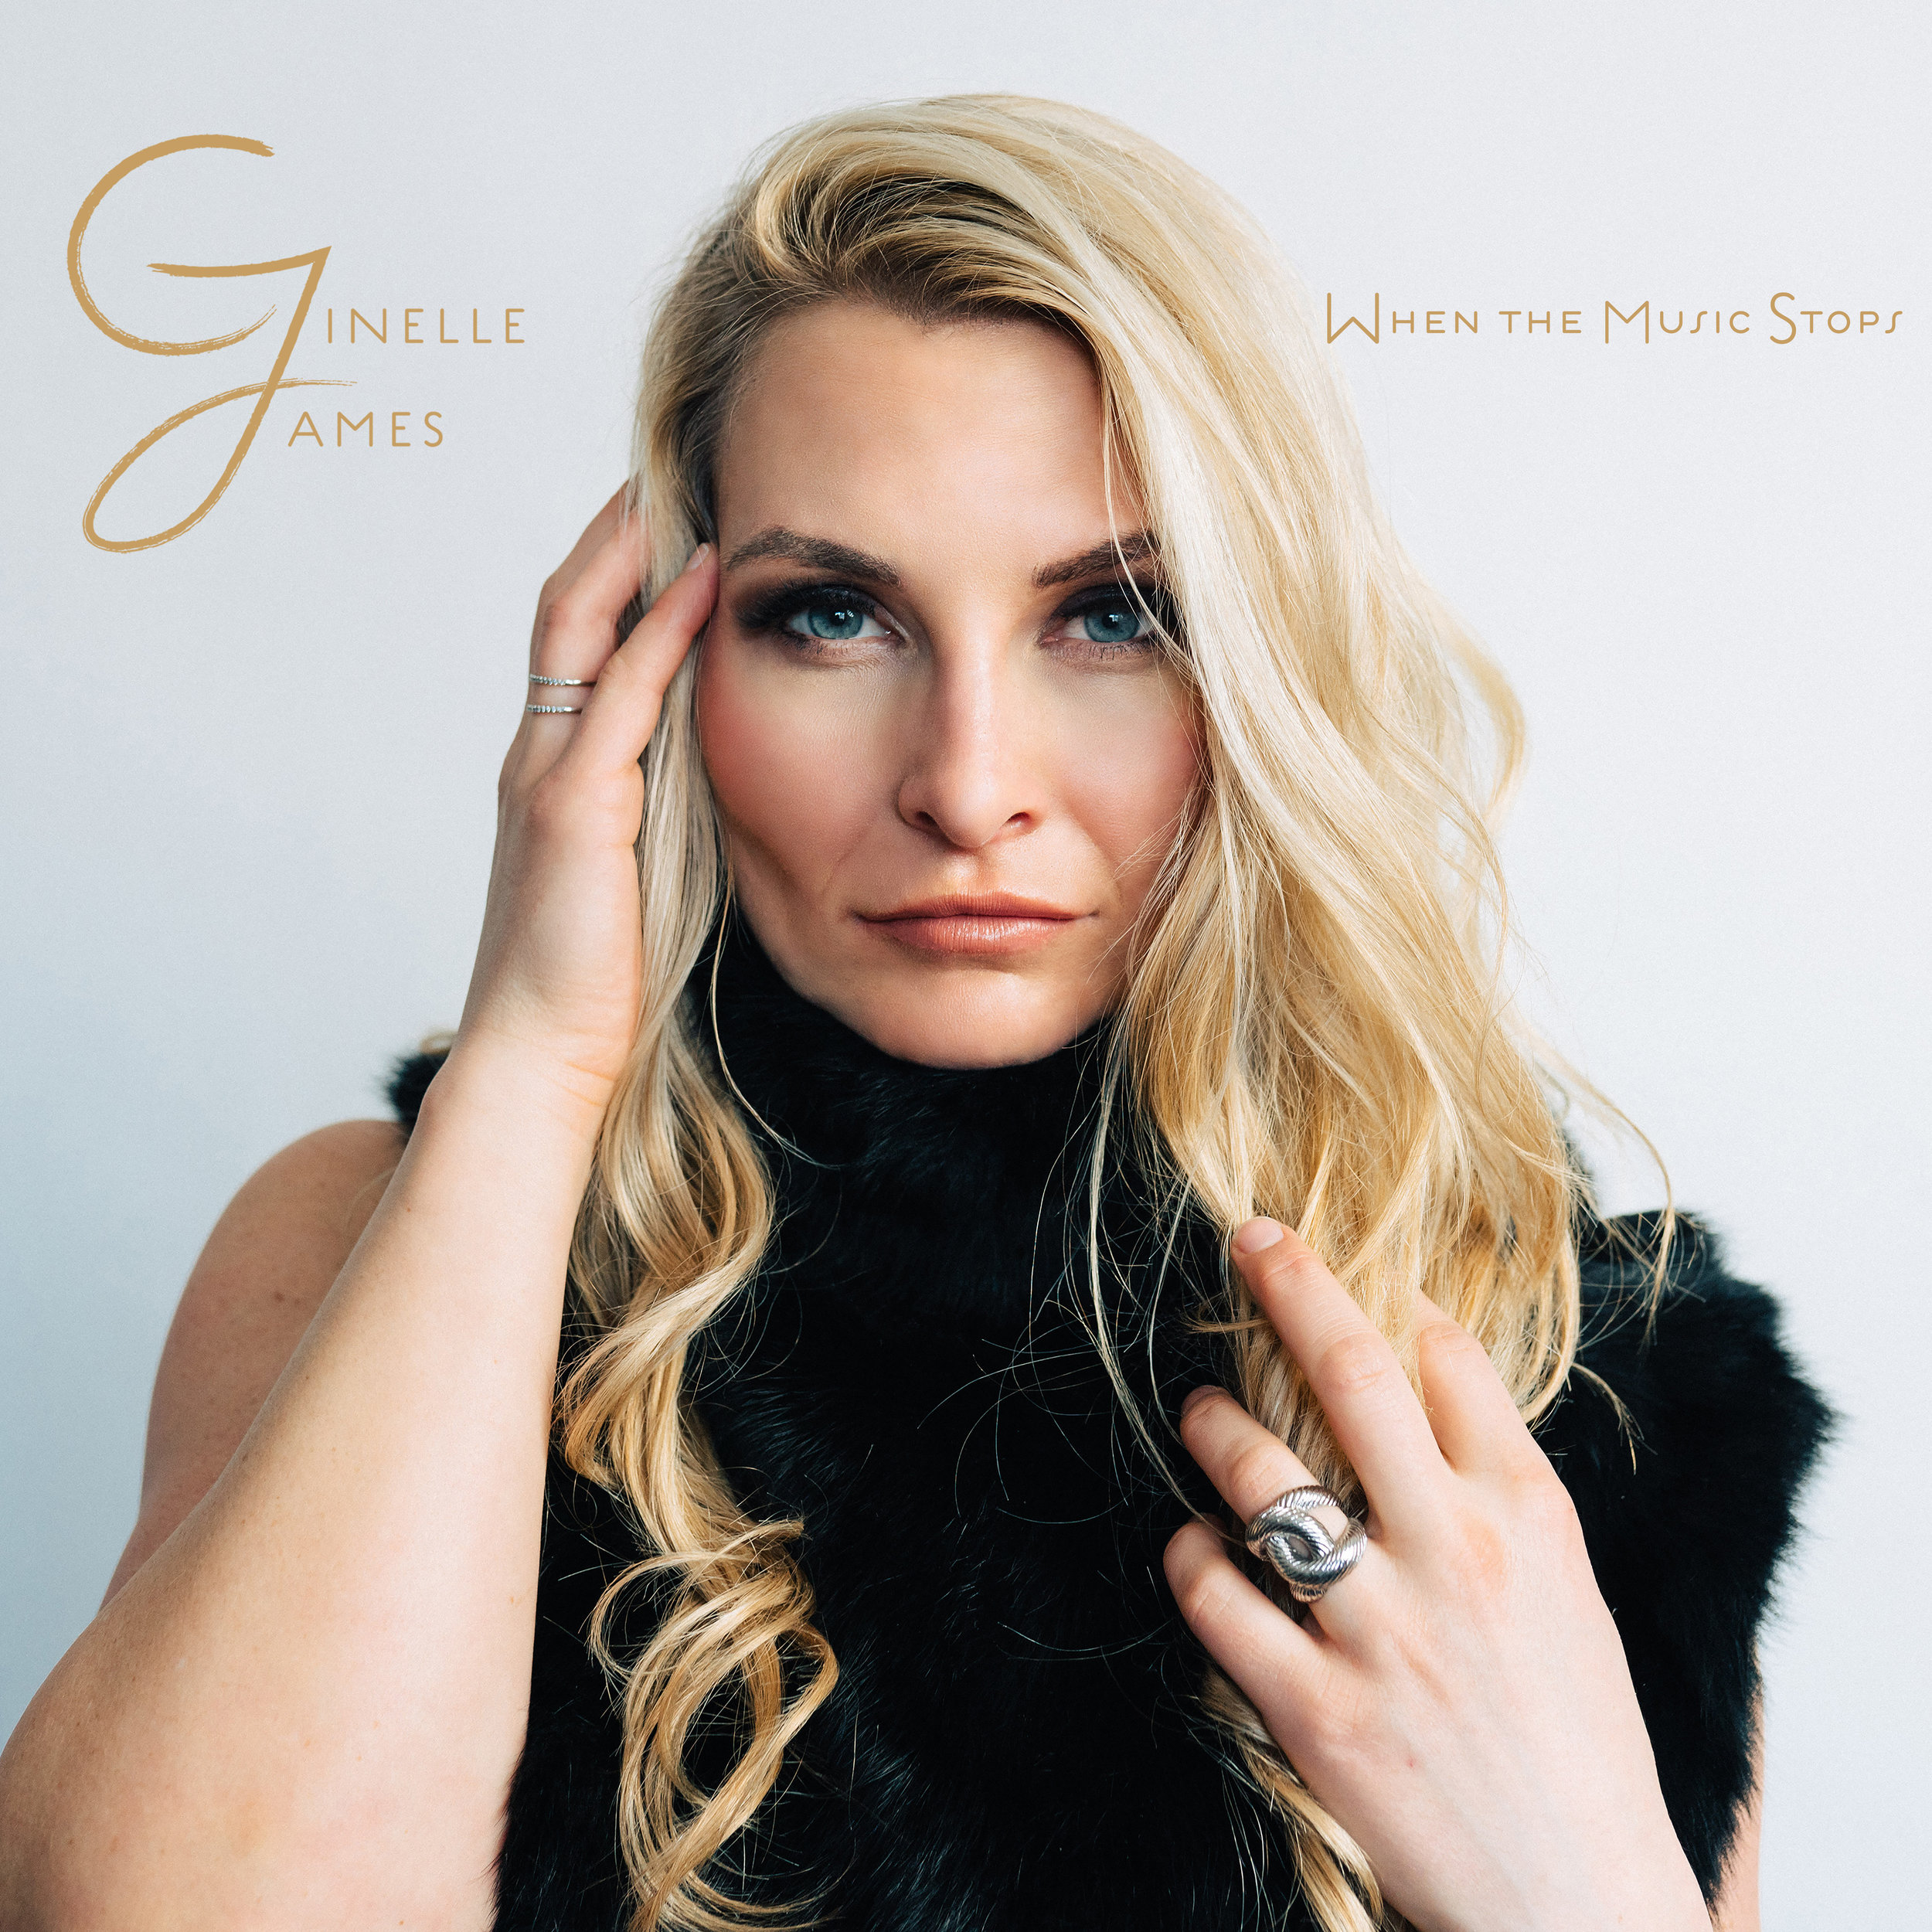 Ginelle James-When the Music Stops -